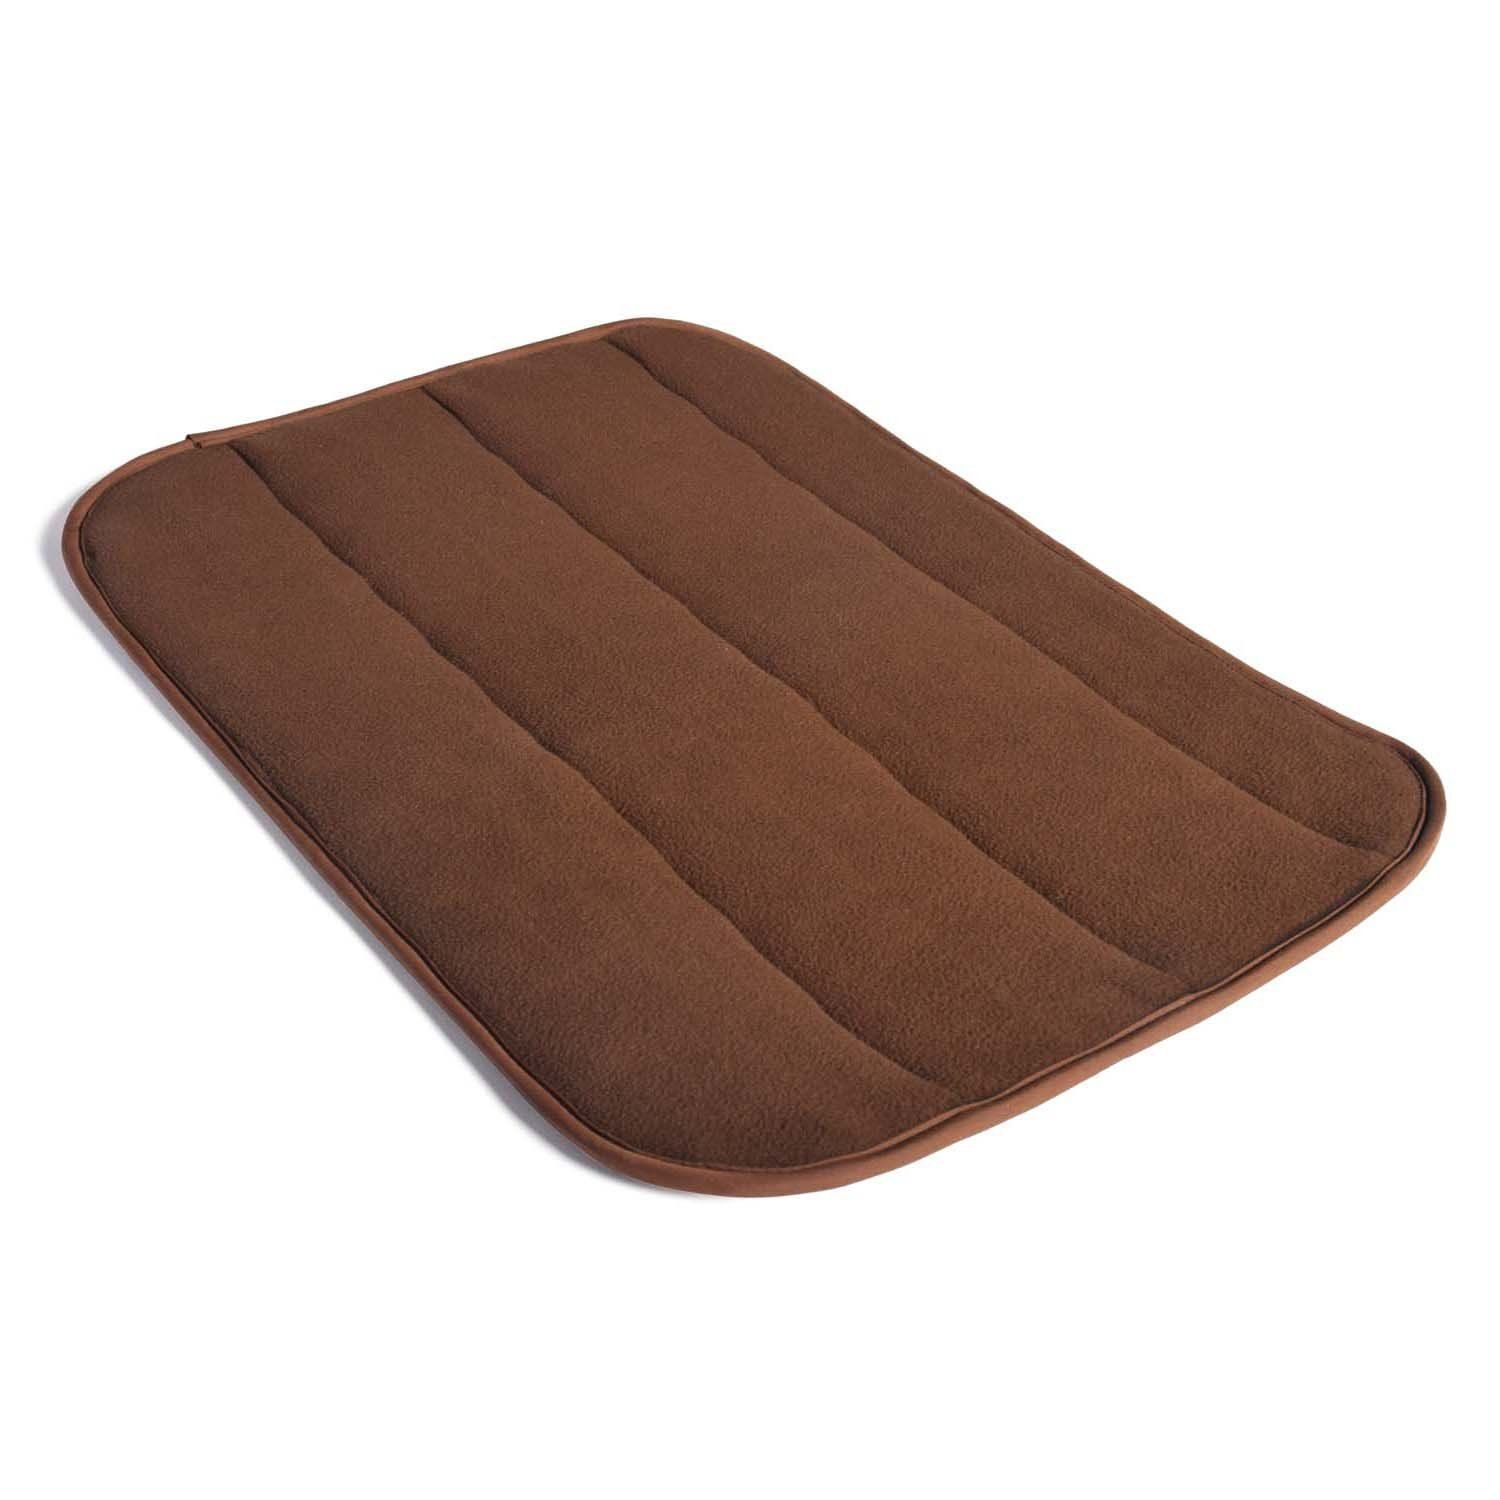 Arf Pets Pet Dog Cat Self Warming Heating Mat Pad For Beds Crates And Kennels With Soft Polyethylene Foam Core Available In Wide Dog Cat Pet Dogs Heat Mat